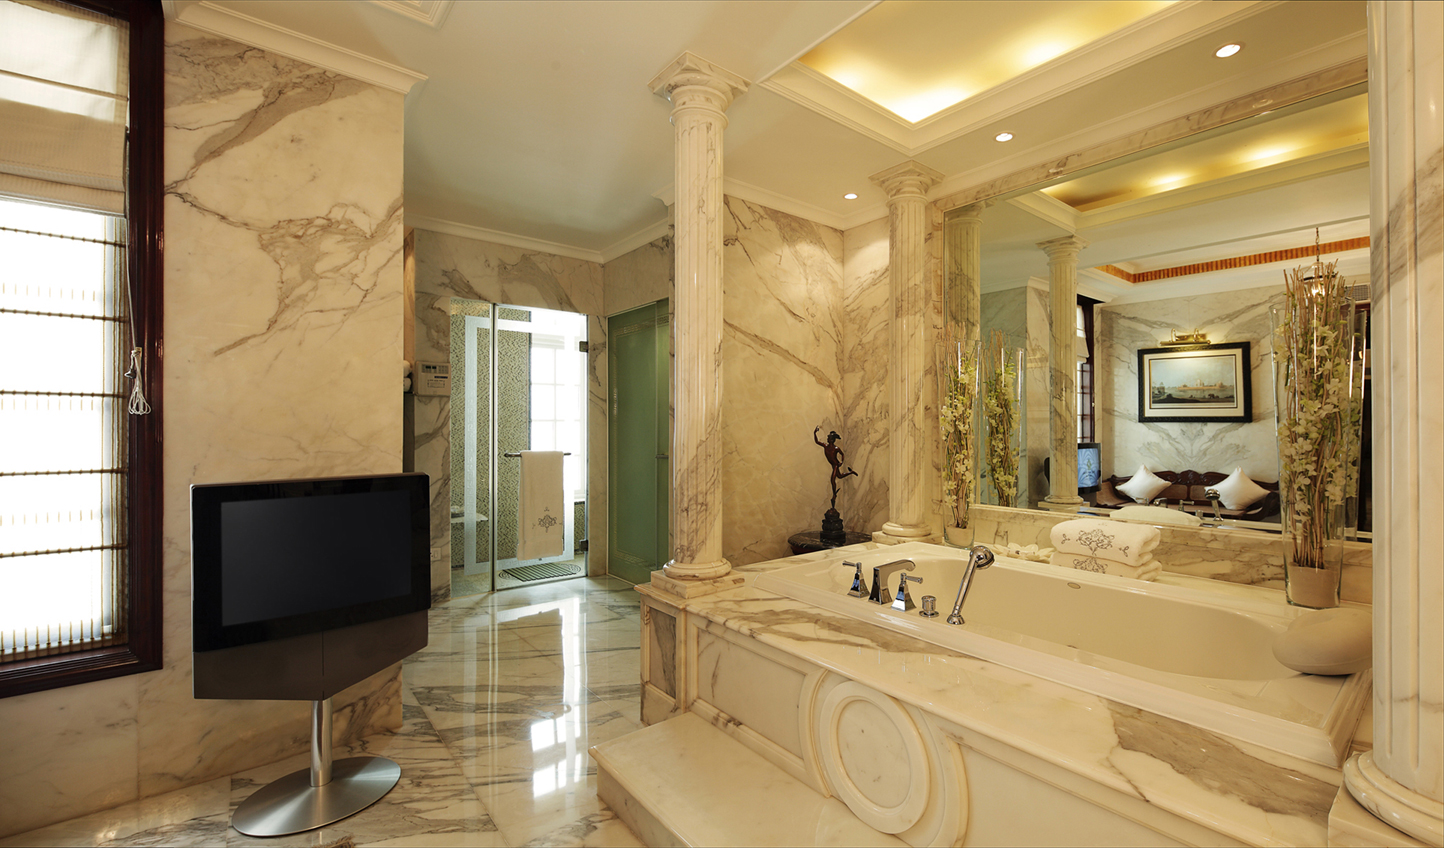 A bathroom fit for royalty